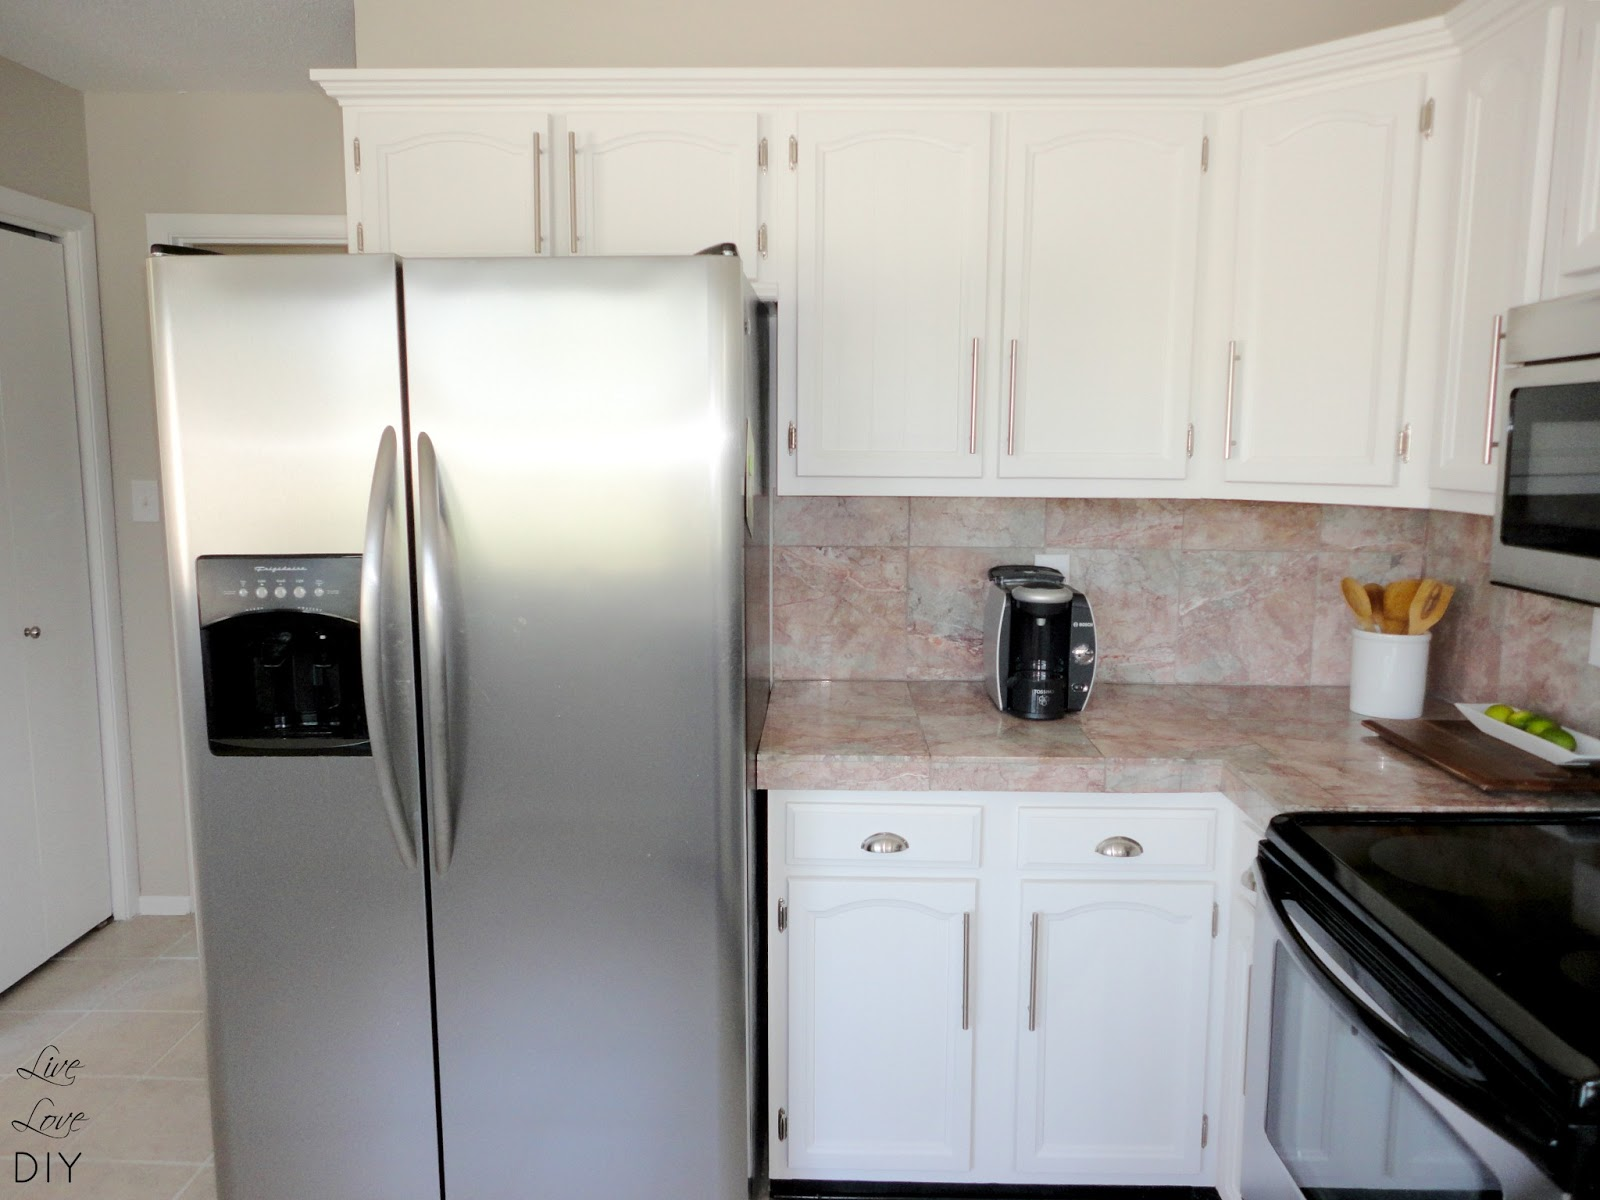 Best White Kitchen Cabinets livelovediy: how to paint kitchen cabinets in 10 easy steps